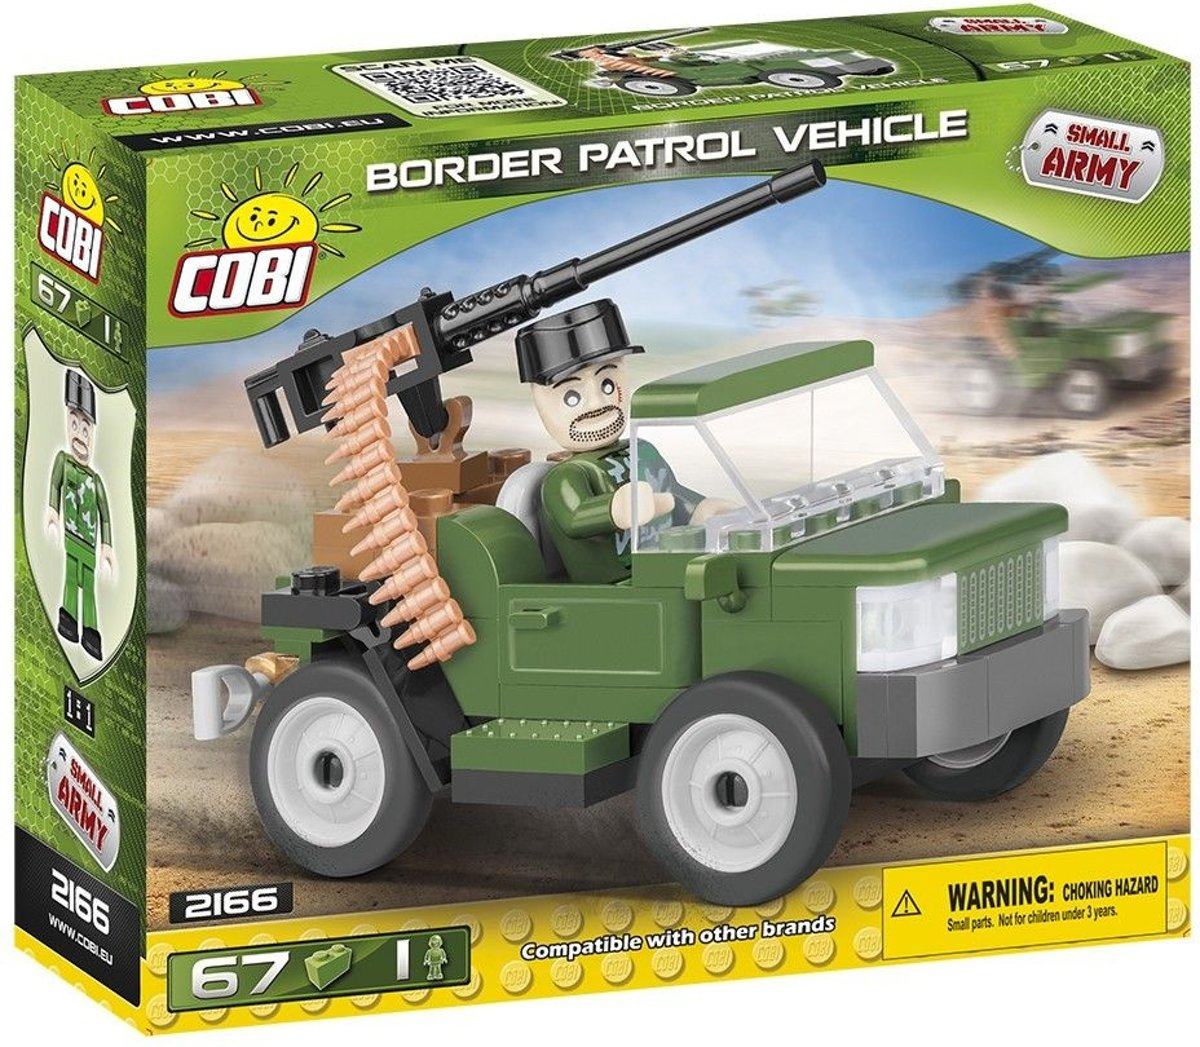 Cobi 67 Pcs Small Army /2166/ Border Patrol Vehicle